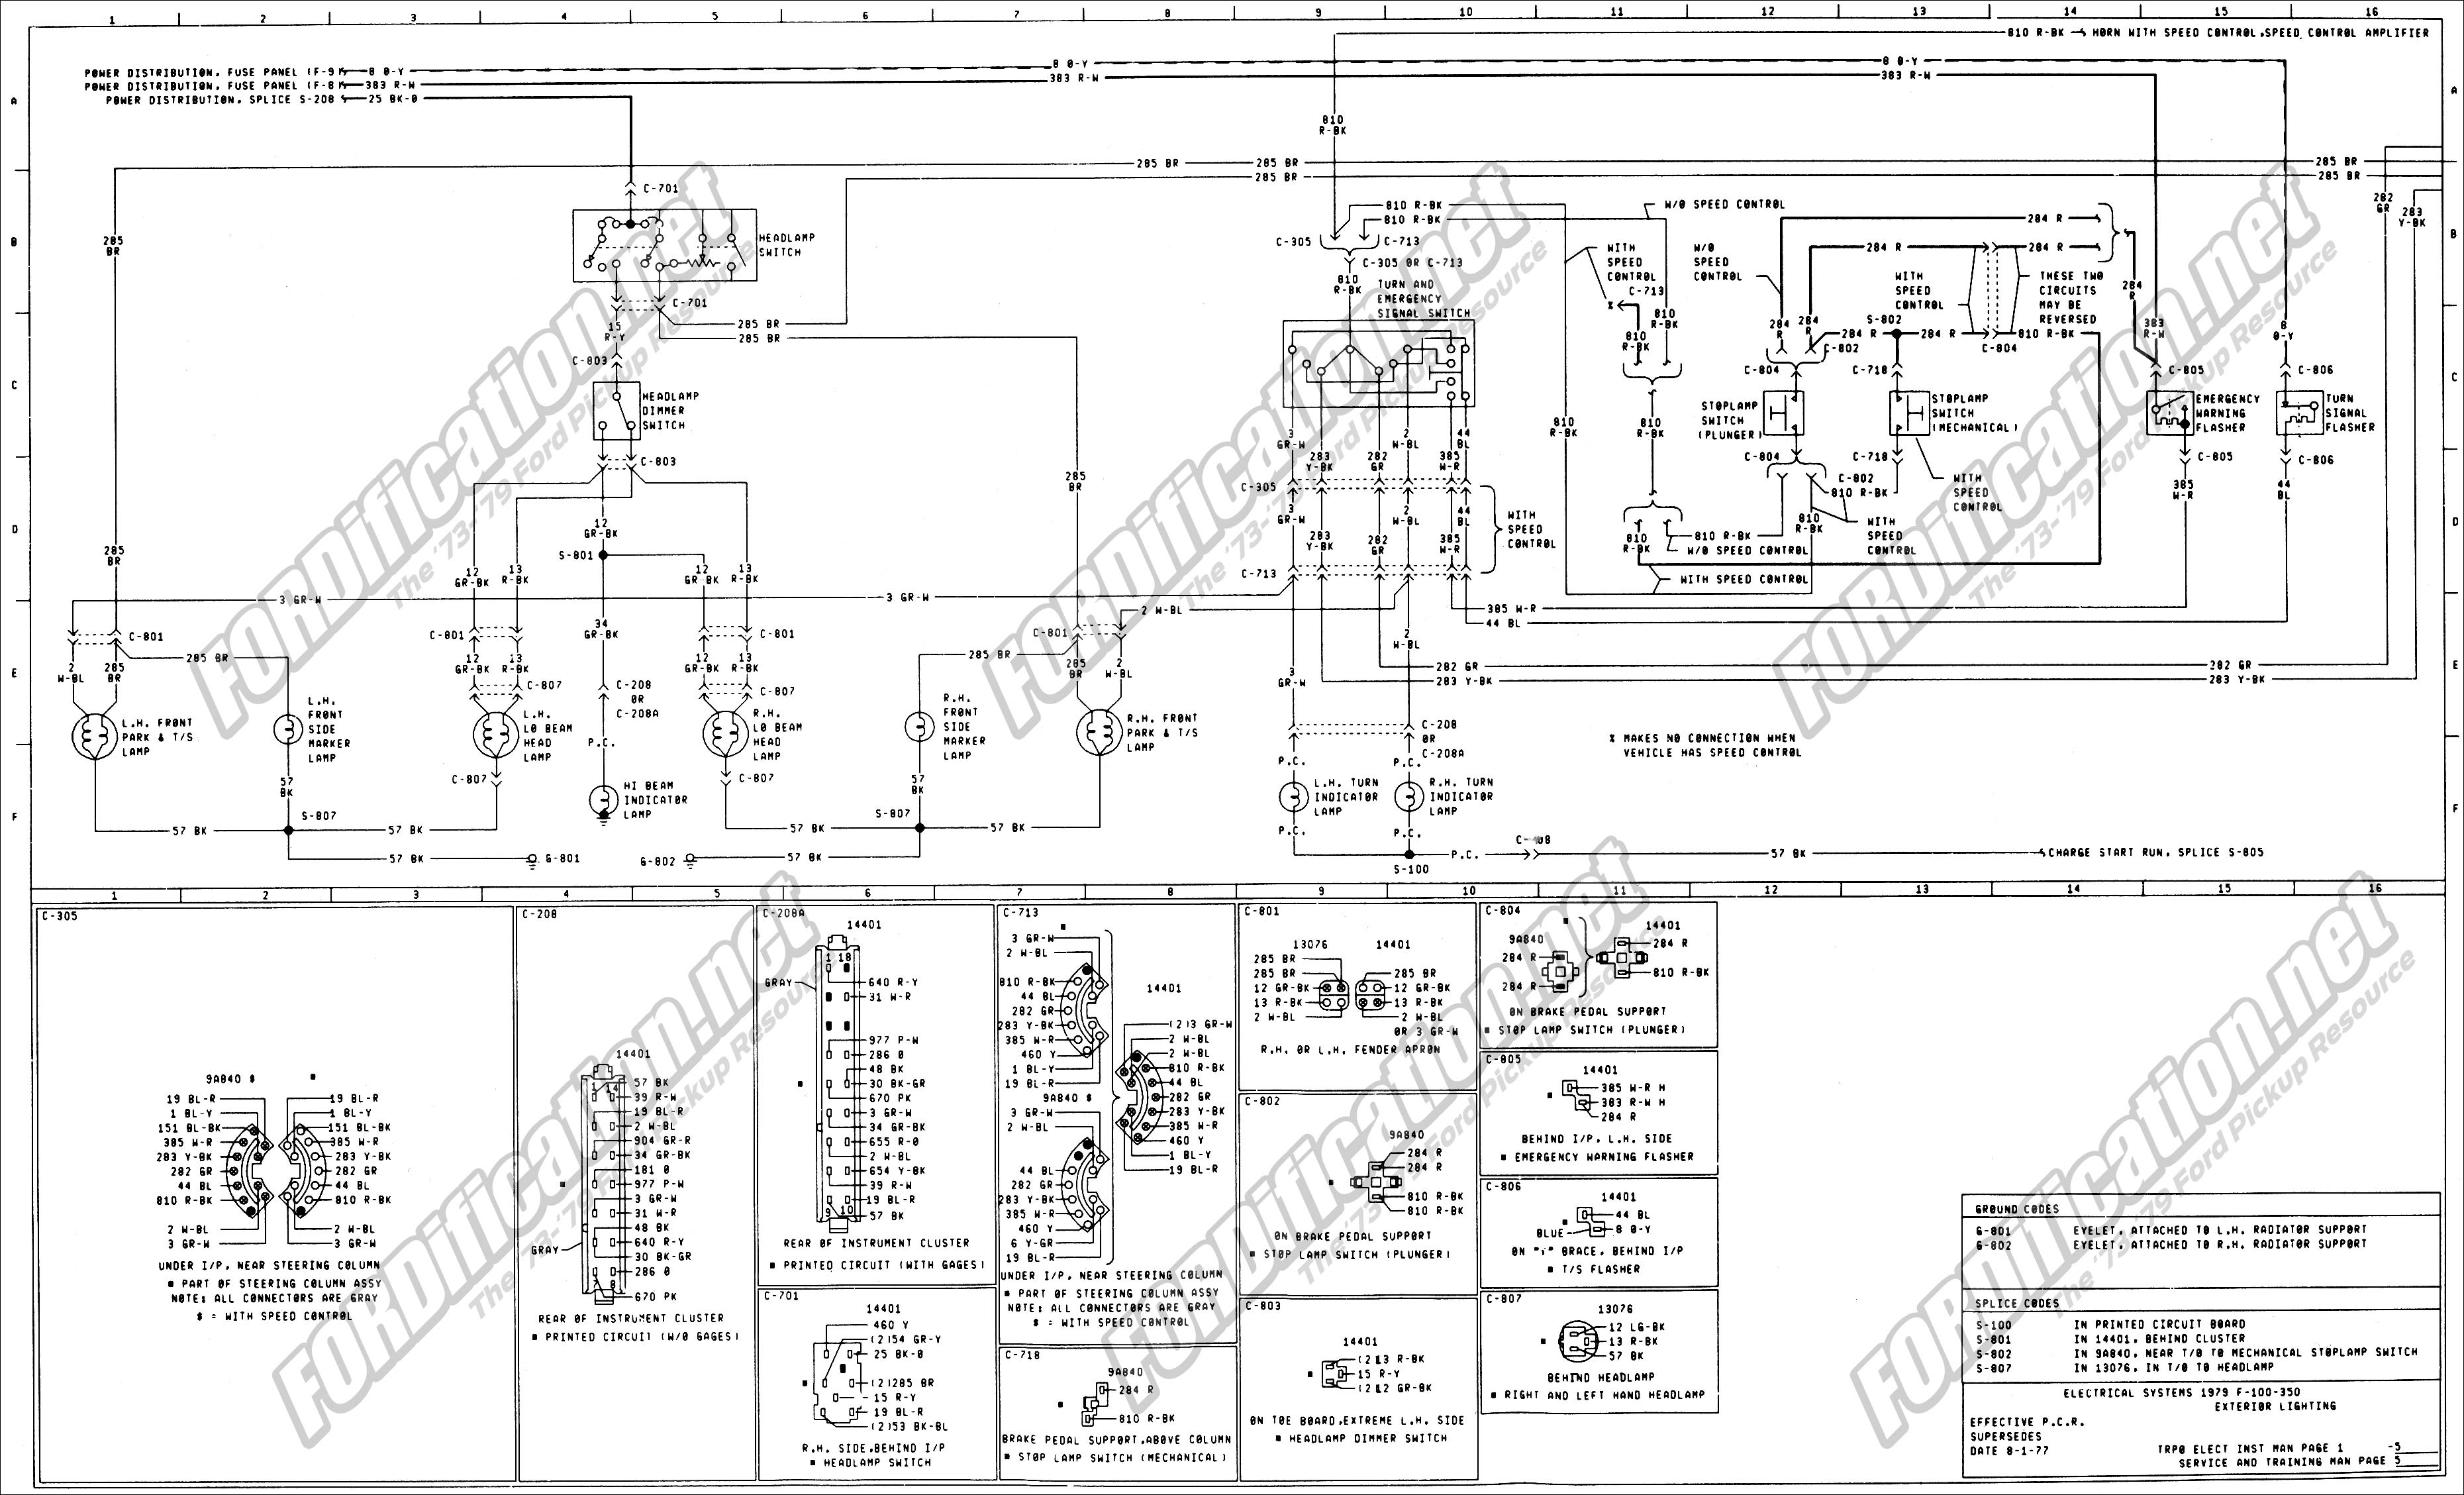 1977 Ford 351m F150 Wiring Diagram Archive Of Automotive 73 Challenger Fuse Box 1973 1979 Truck Diagrams Schematics Fordification Net Rh